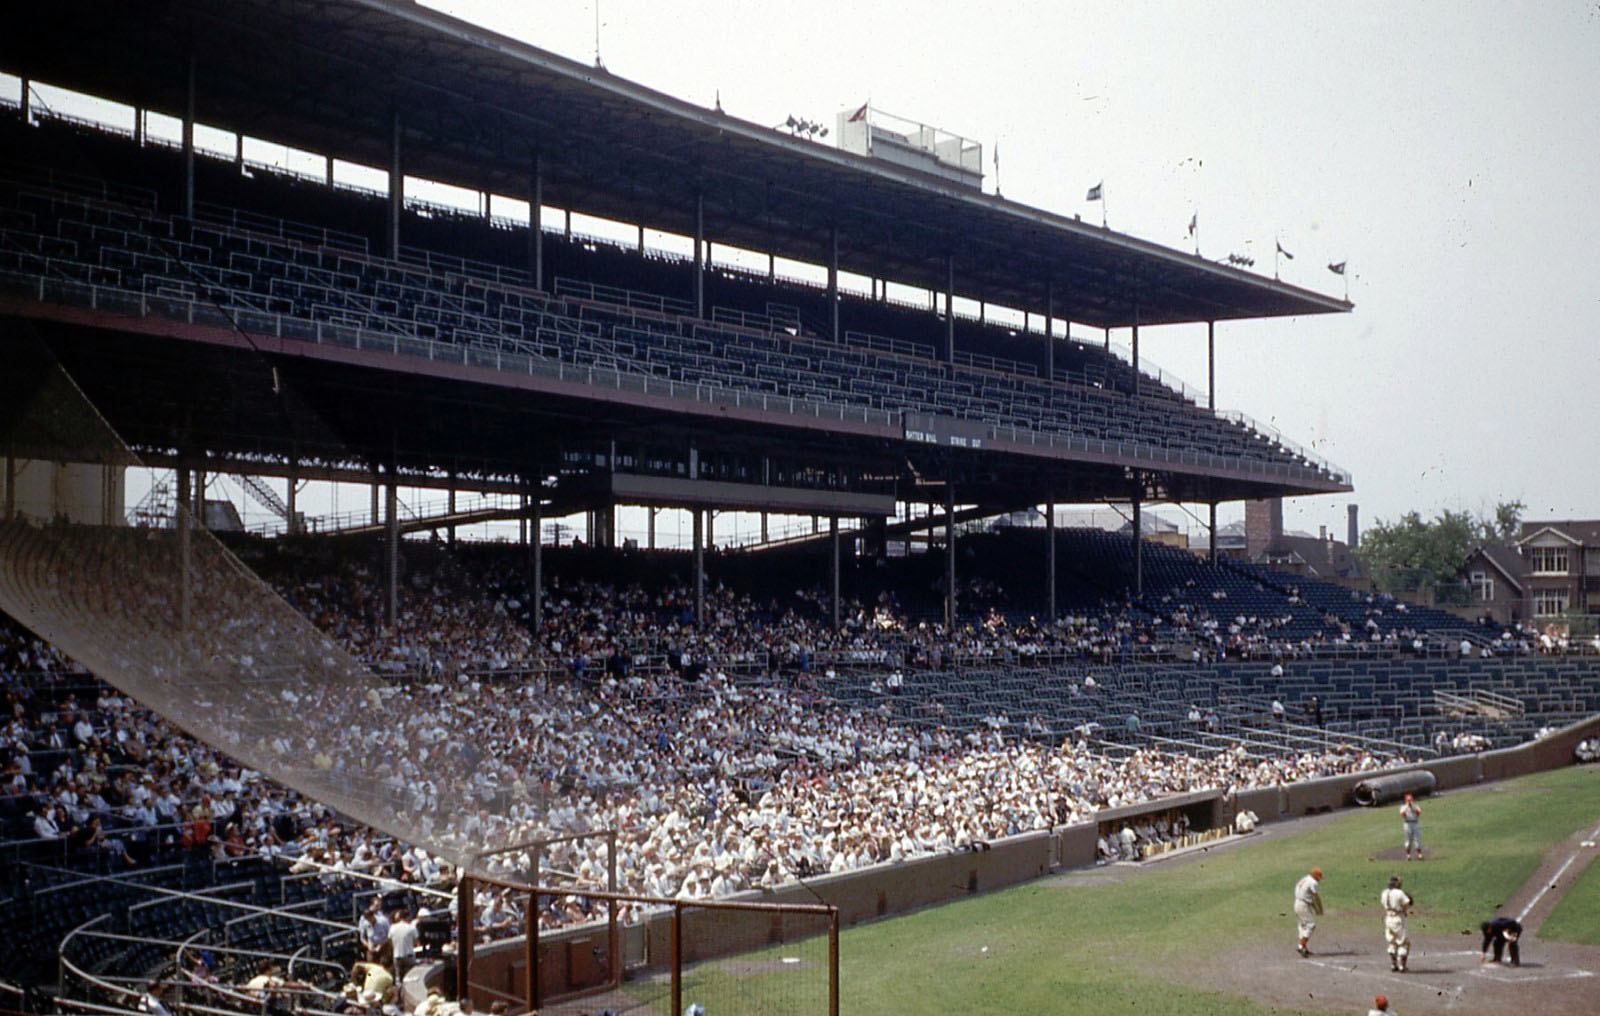 Kodachrome Chicago of 1953: Wrigley Field